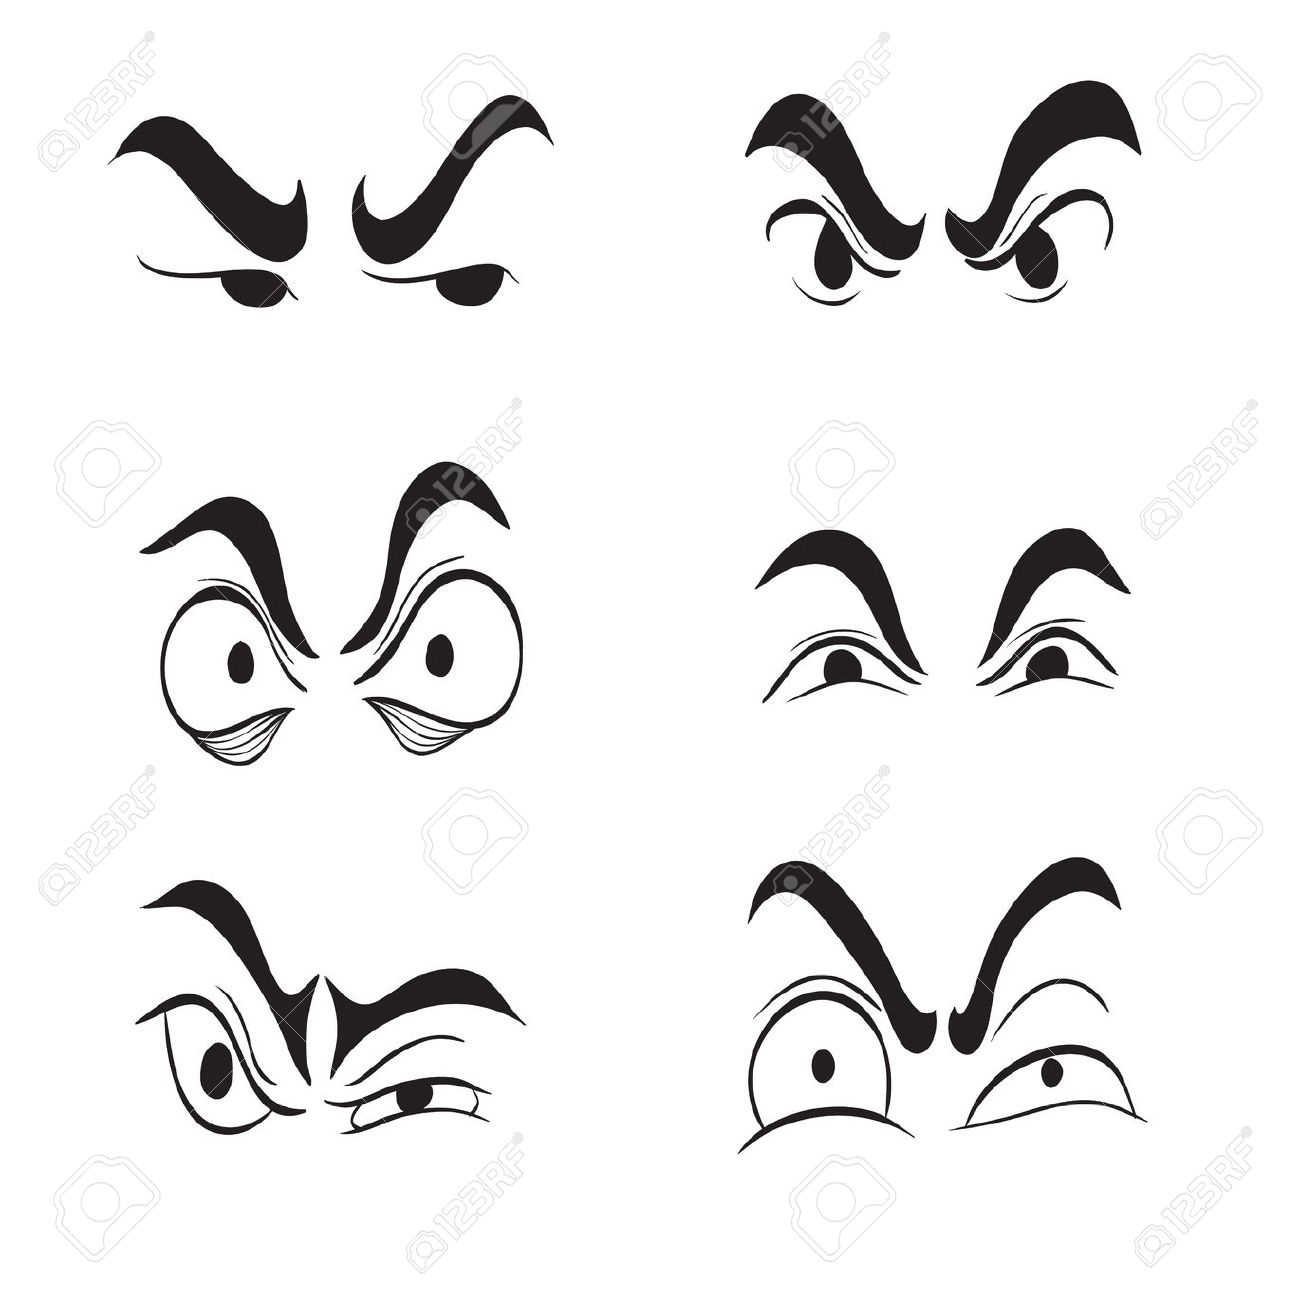 Angry Eye Clipart.